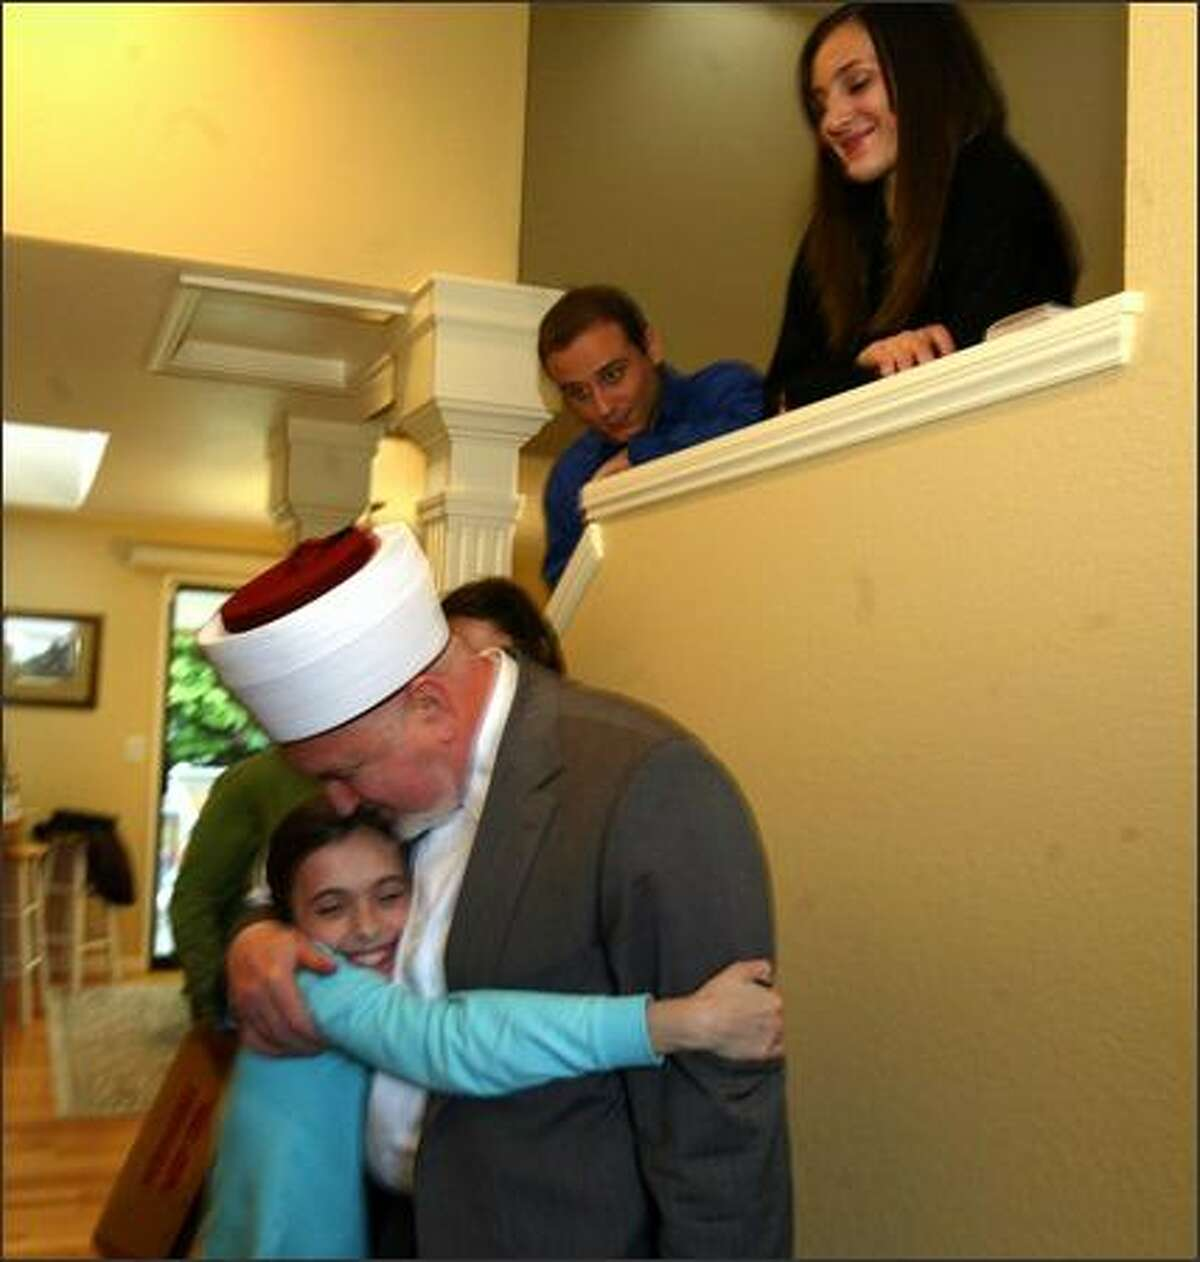 Farrah Saracevic, 10, hugs Grand Mufti Mustafa Ceric after he visited her Lynnwood home Sunday. Farrah's dad, Muhamed Saracevic, is local president of the Congress of North American Bosniaks. Muhamed's other daughter Hanan Saracevic is right. Left of her is family friend Nedzad Taljanovic.